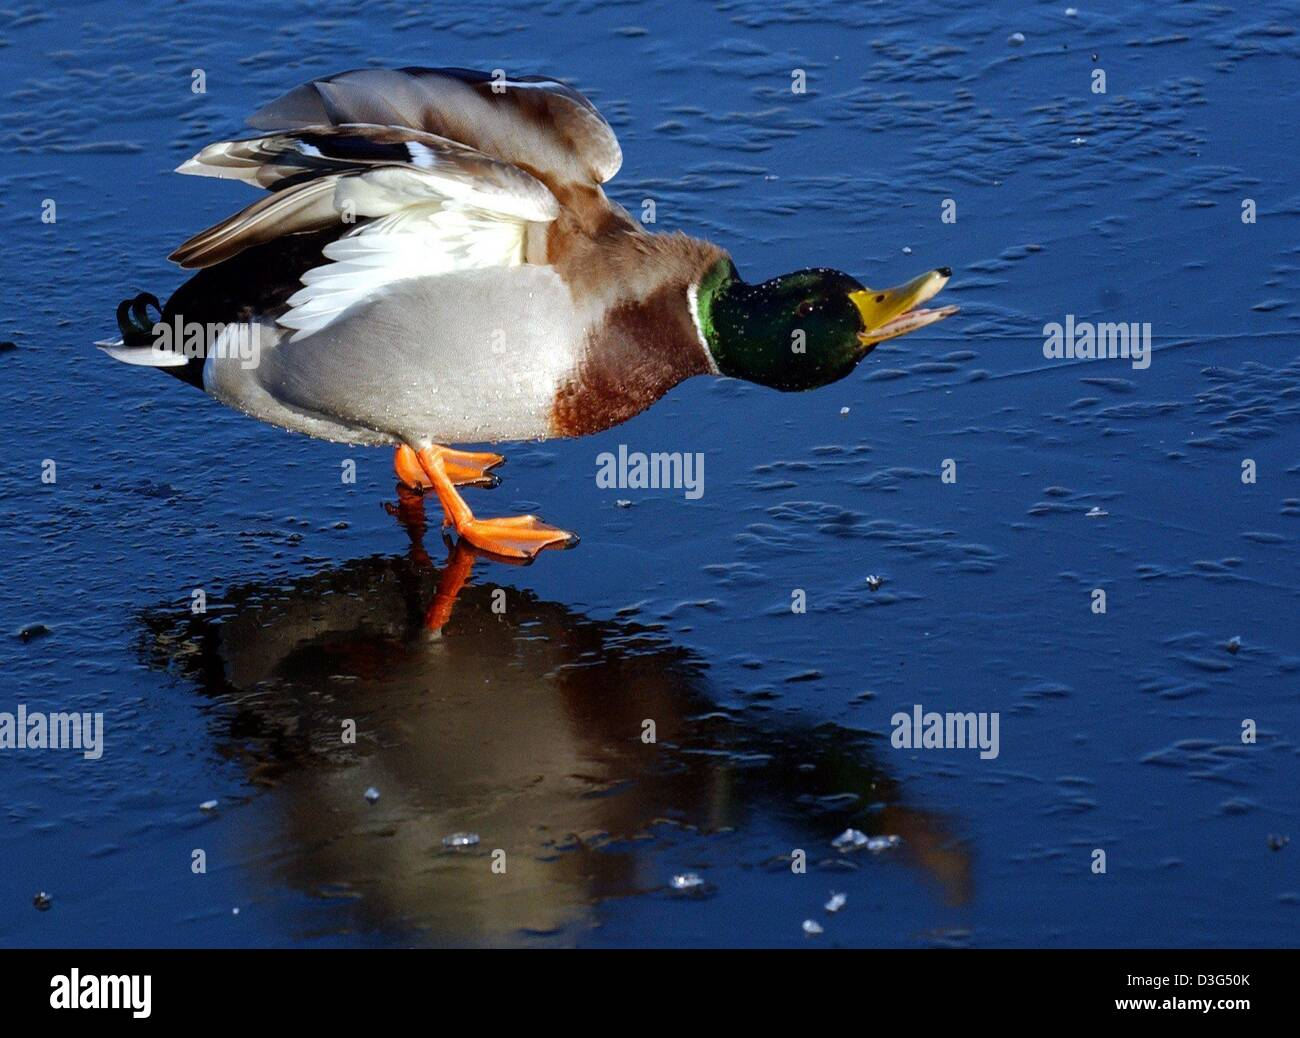 (dpa) - A loudly quacking drake skids over the thin layer of ice on the River Havel near Potsdam, Germany, 9 December - Stock Image